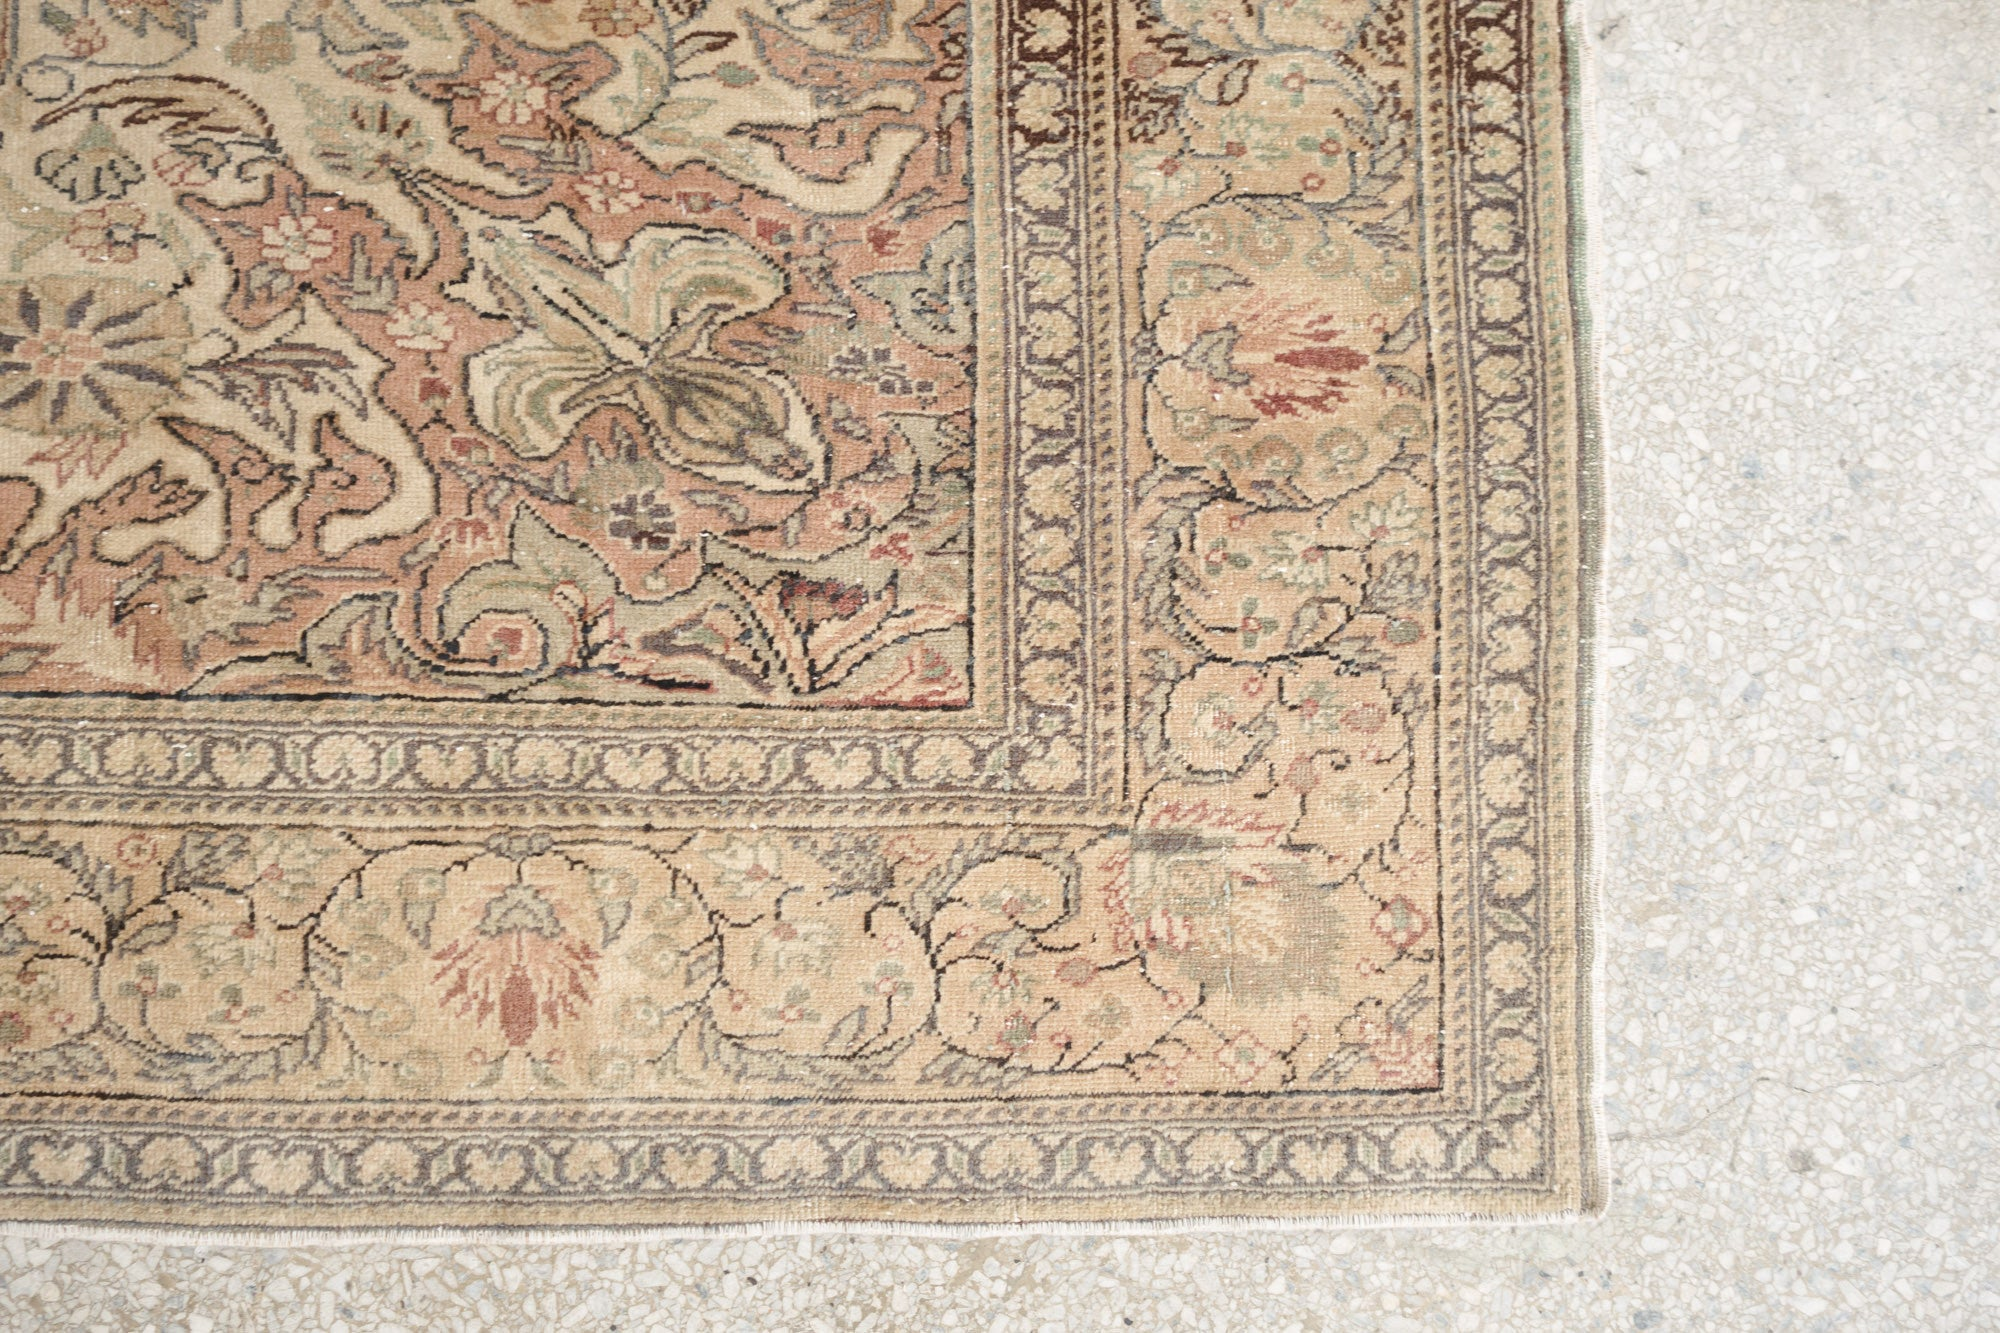 6.5x10 Turkish Rug | ALTIN